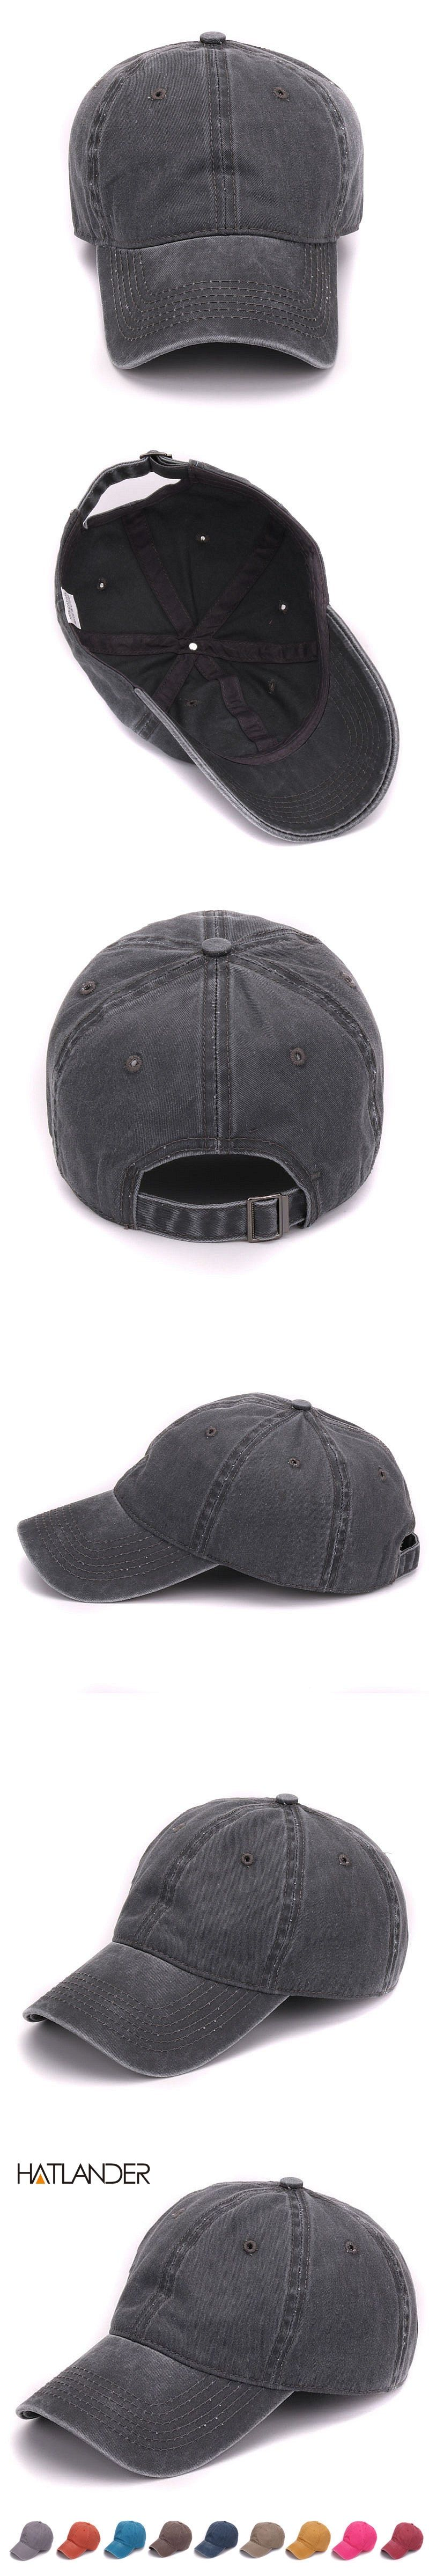 19b490e1149240 Plain dyed sand washed 100% soft cotton cap blank baseball caps dad hat no  embroidery sport mens cap and hat for men and women | Accessories |  Pinterest ...